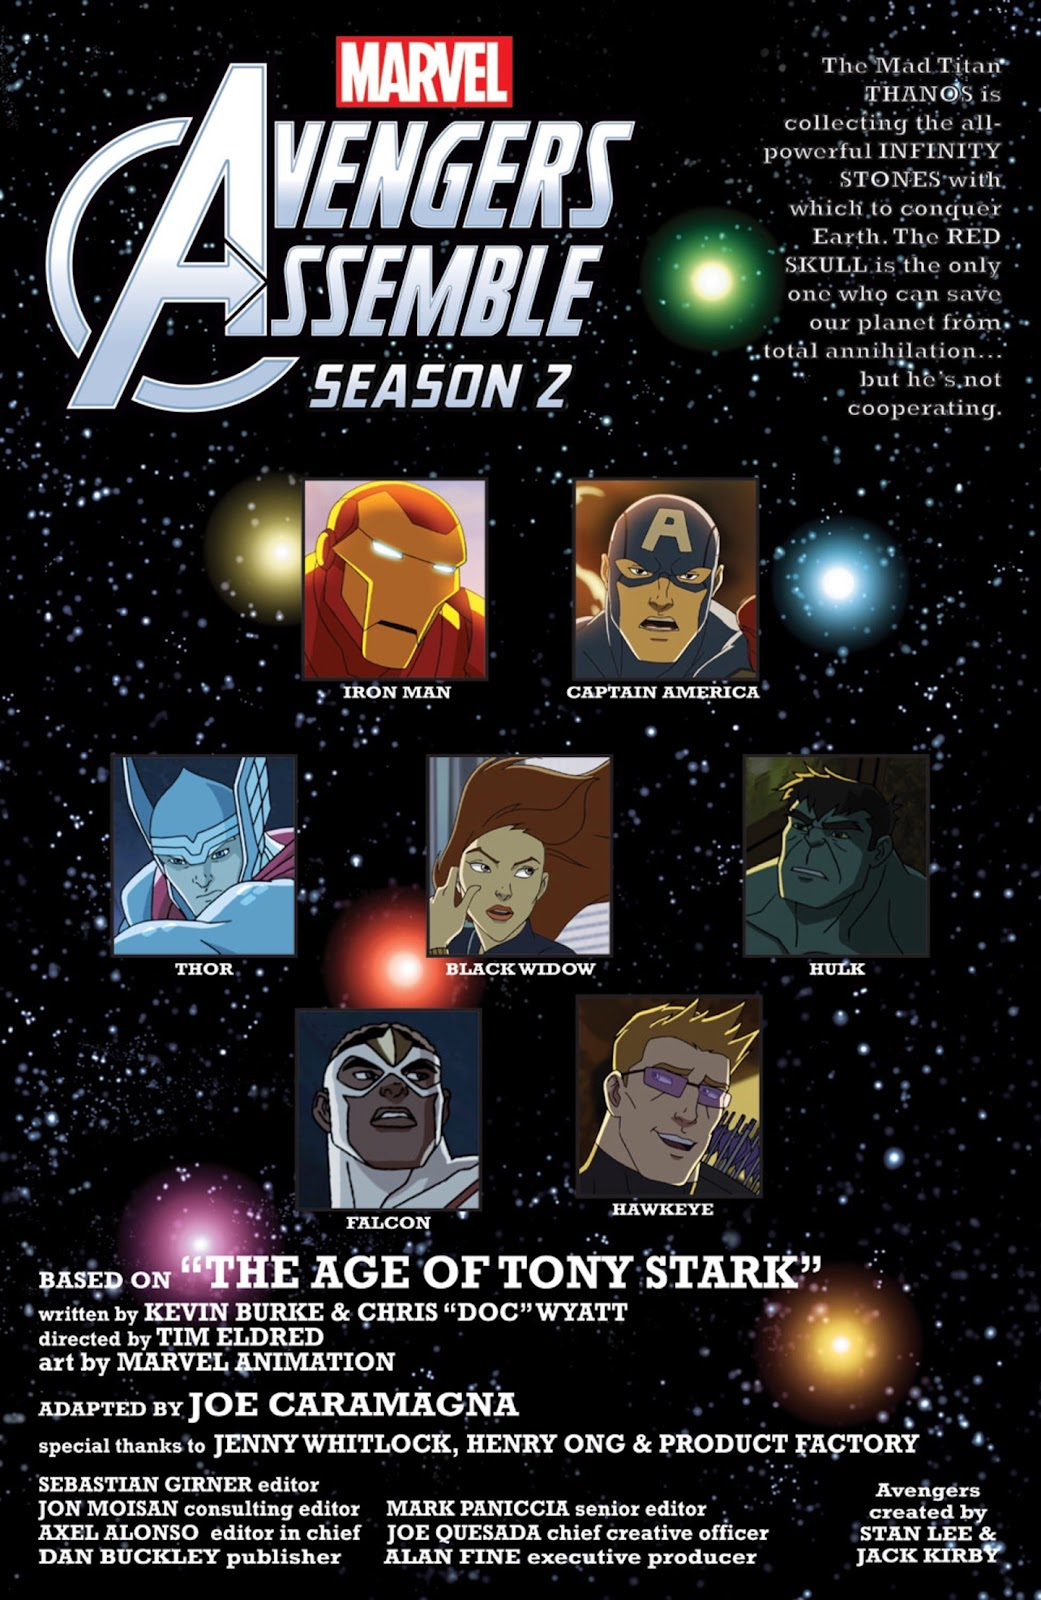 Read online Marvel Universe Avengers Assemble Season 2 comic -  Issue #6 - 2